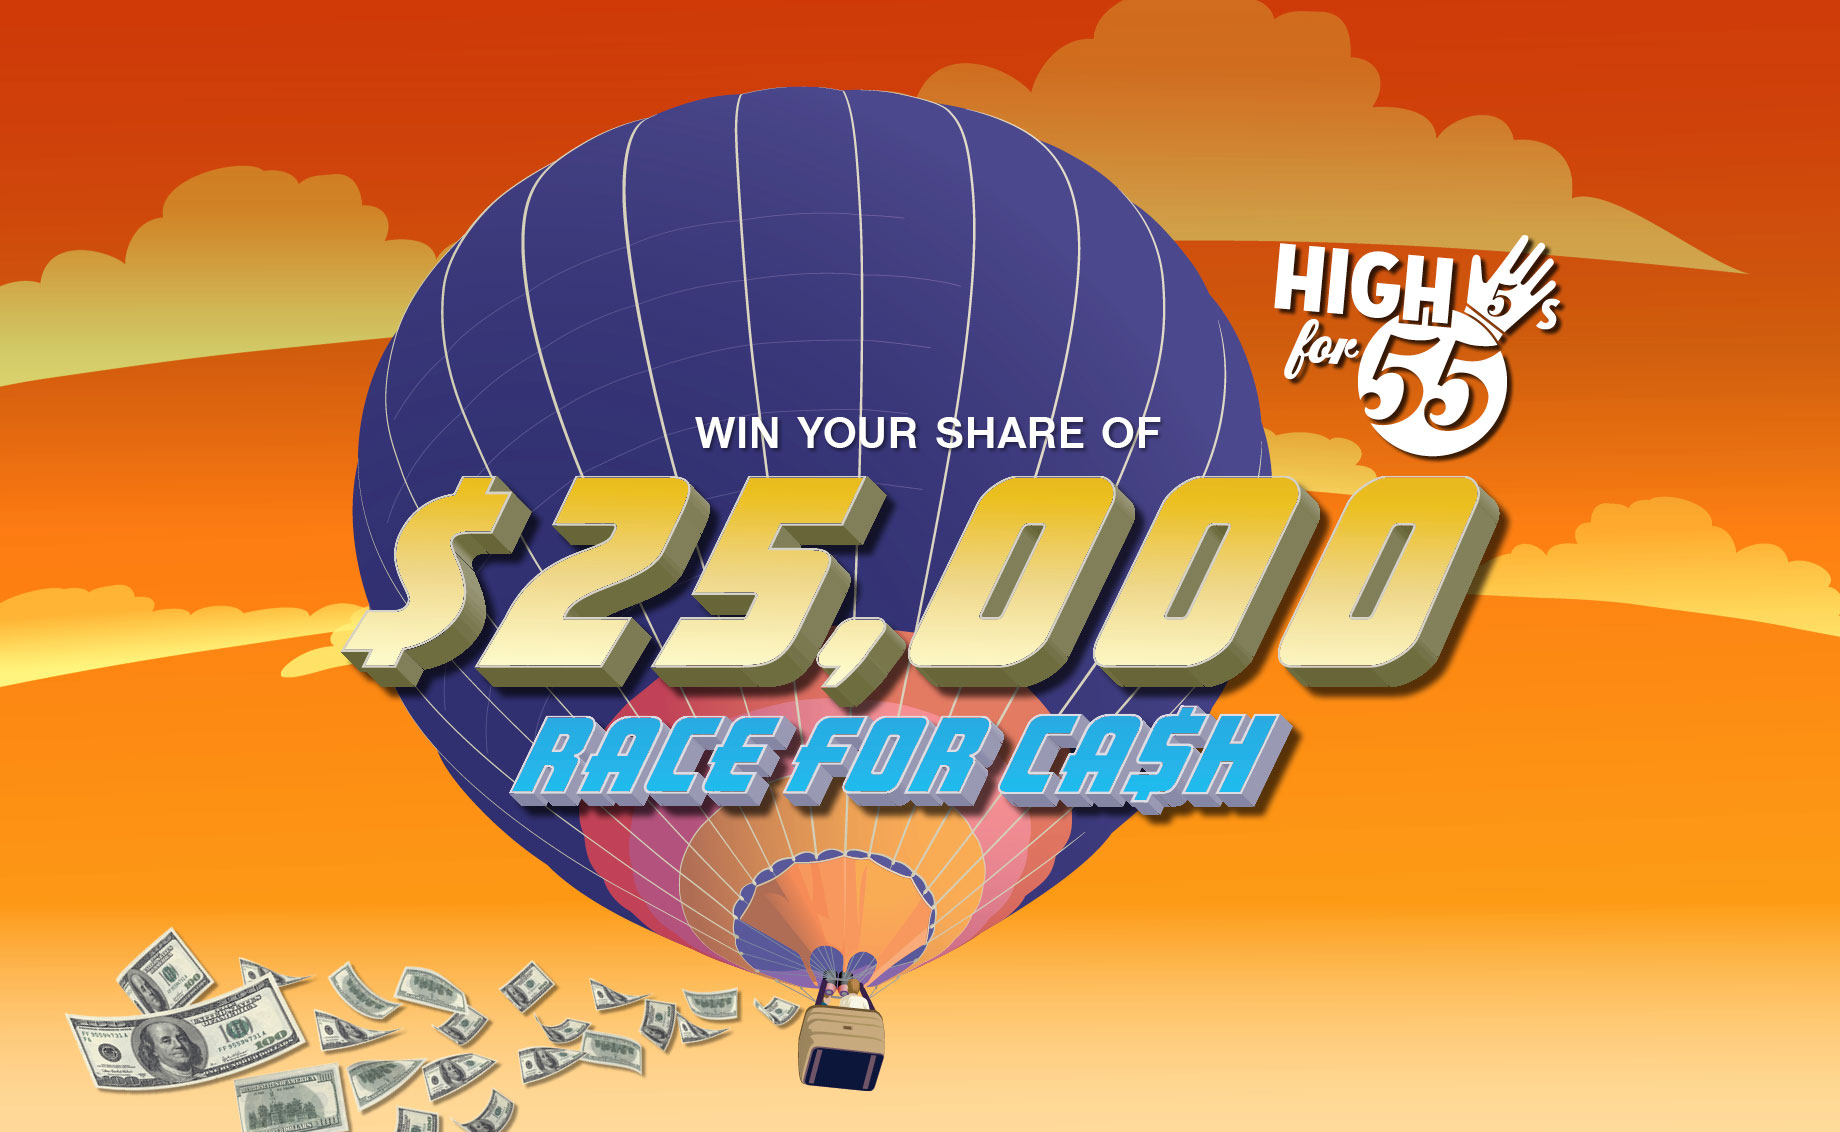 High 5's for 55 – Race for Cash